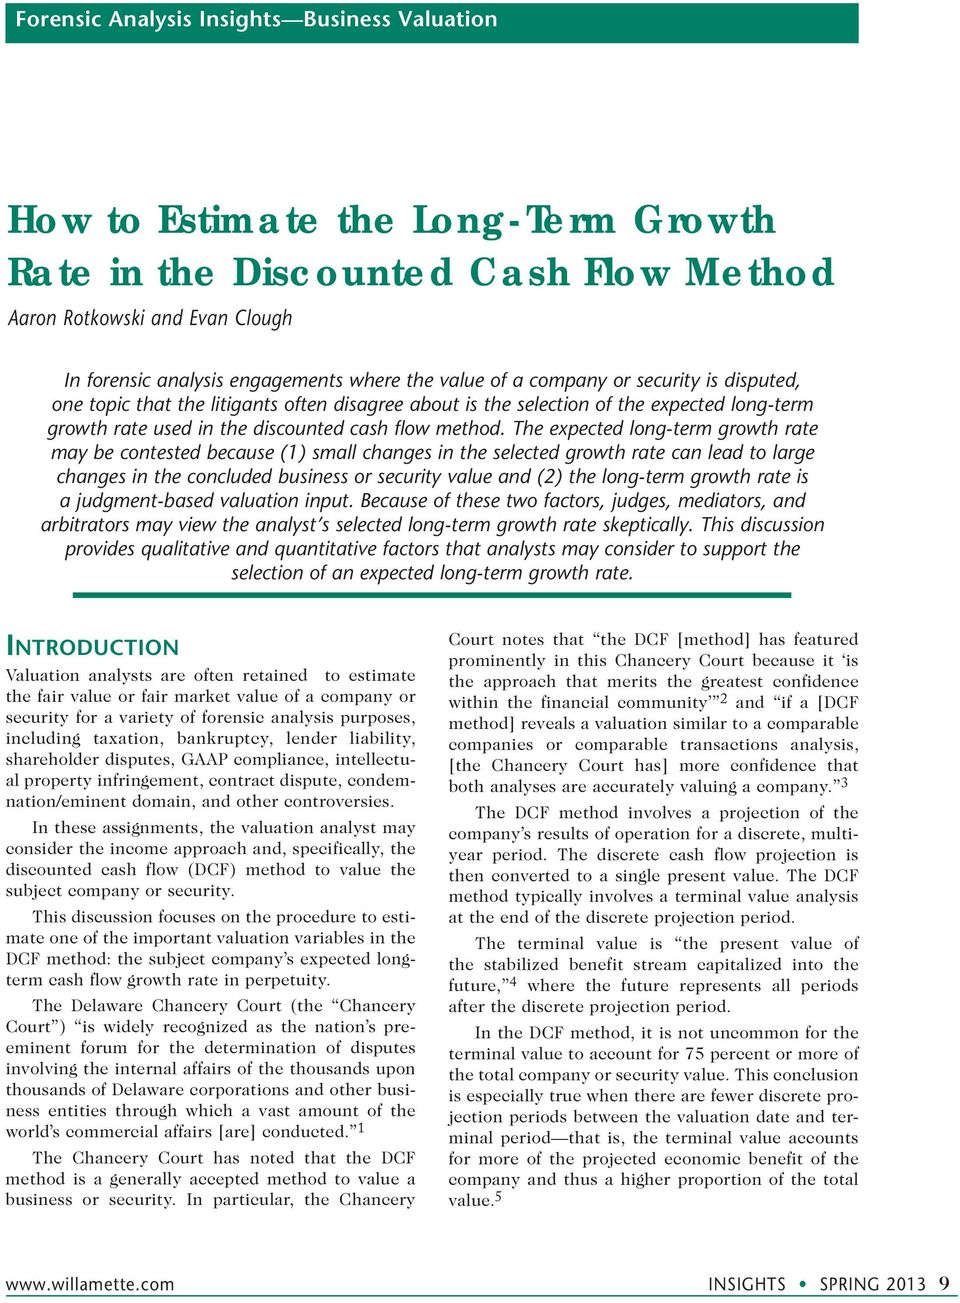 The expected long-term growth rate may be contested because (1) small changes in the selected growth rate can lead to large changes in the concluded business or security value and (2) the long-term